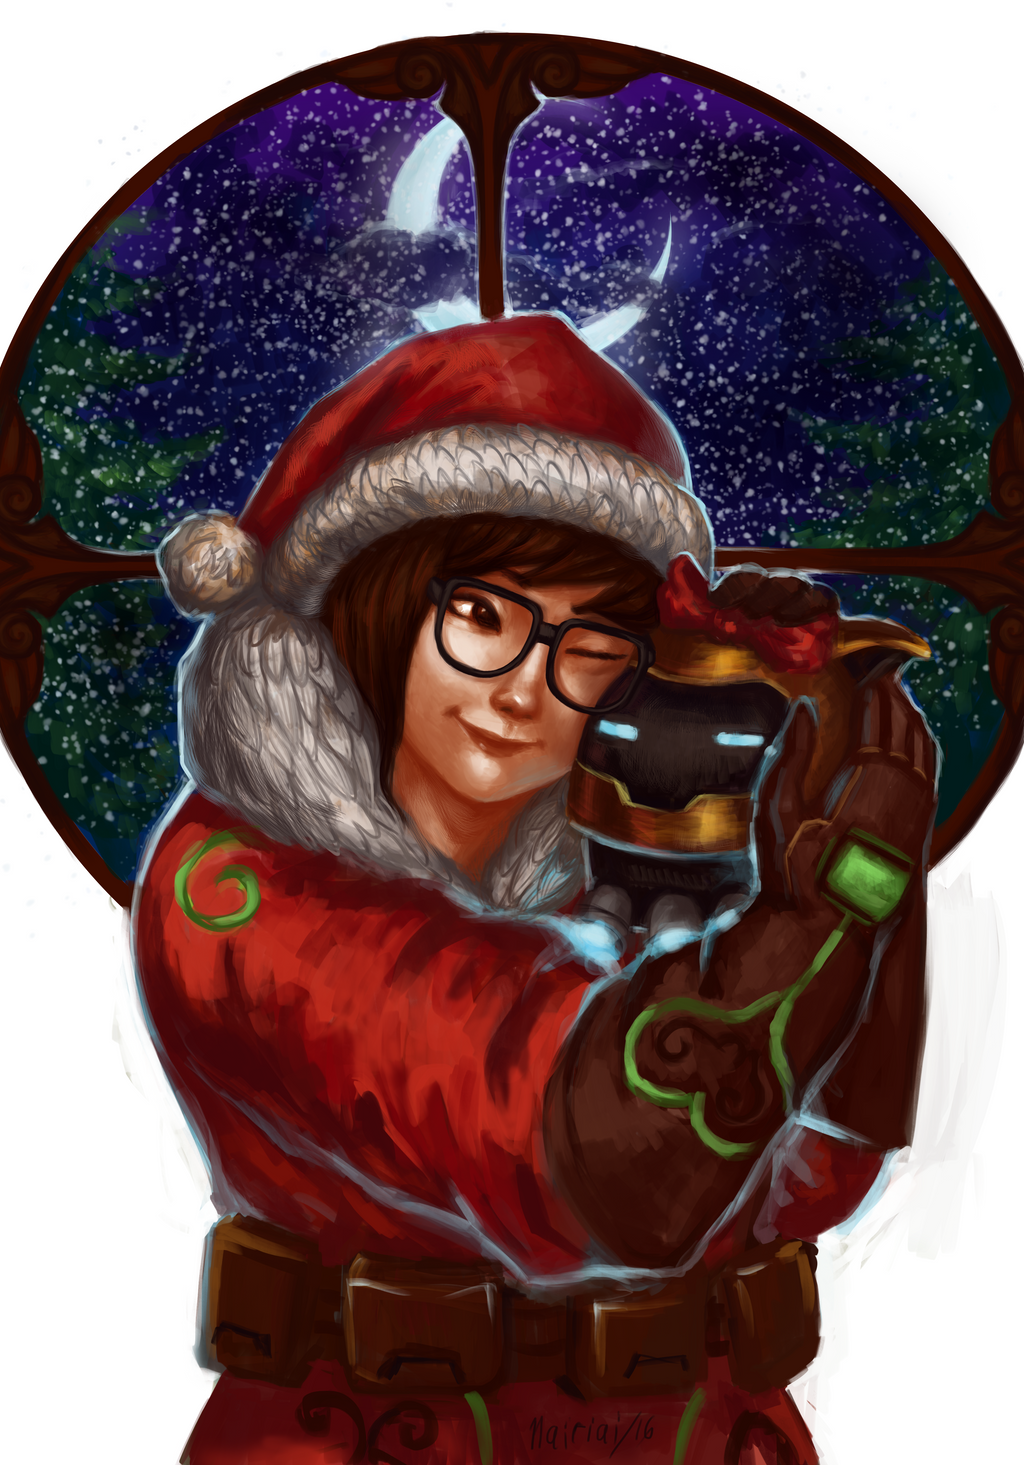 Overwatch christmas mei by nairiai on deviantart - Overwatch christmas wallpaper ...